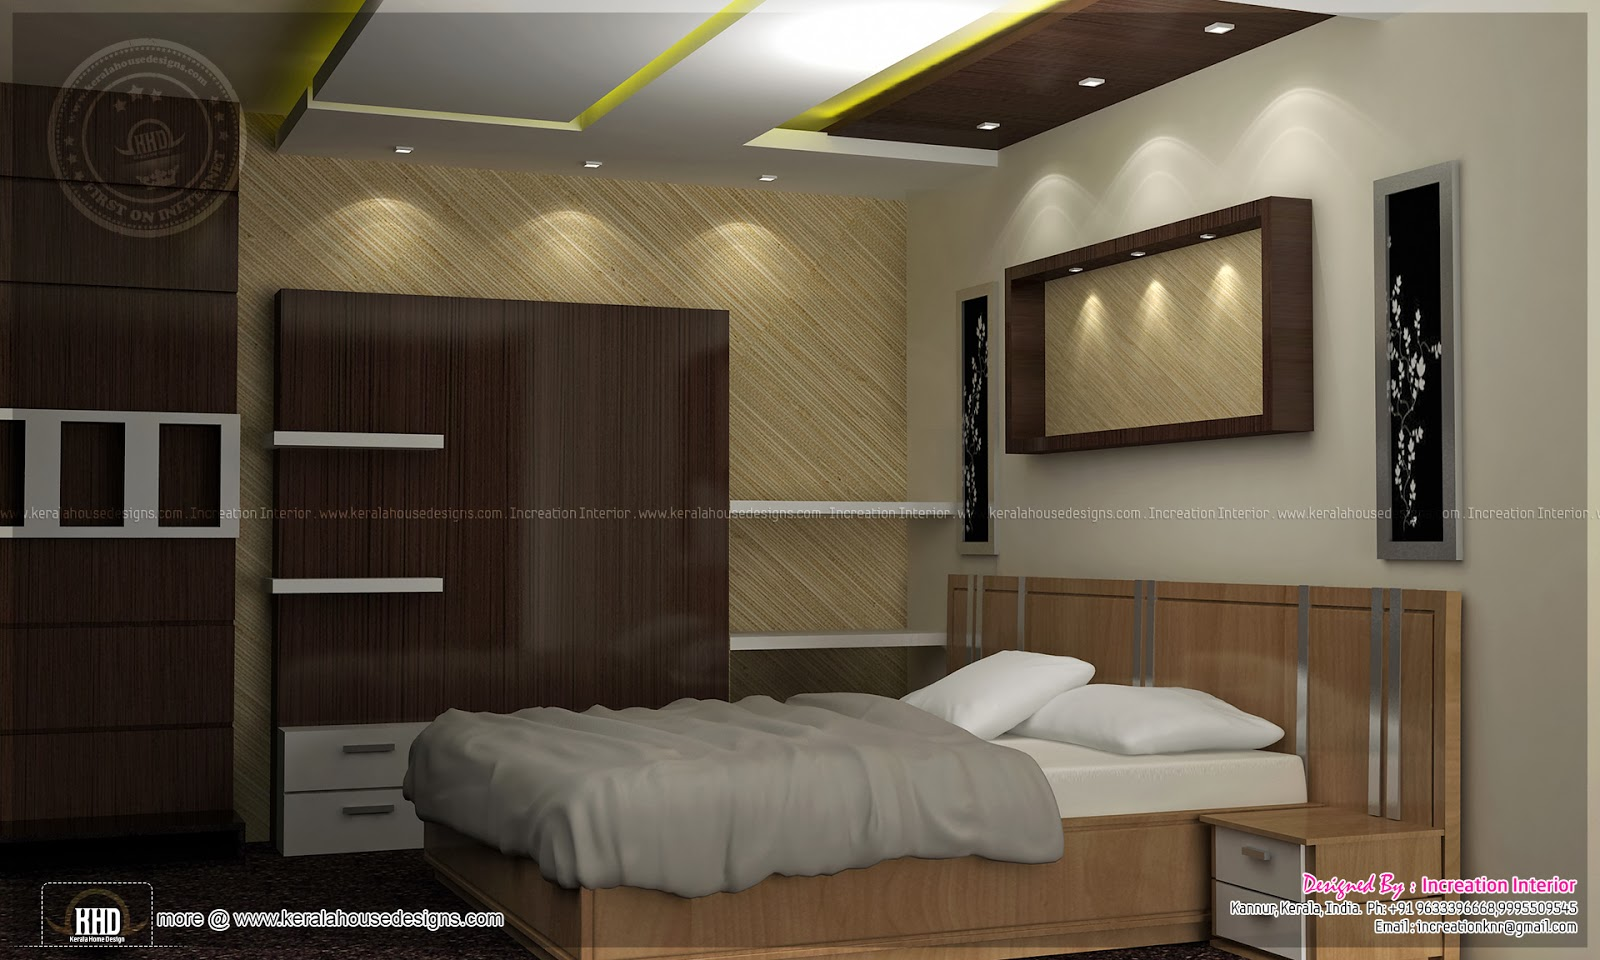 Bedroom interior designs indian house plans for Bedroom interior design pictures